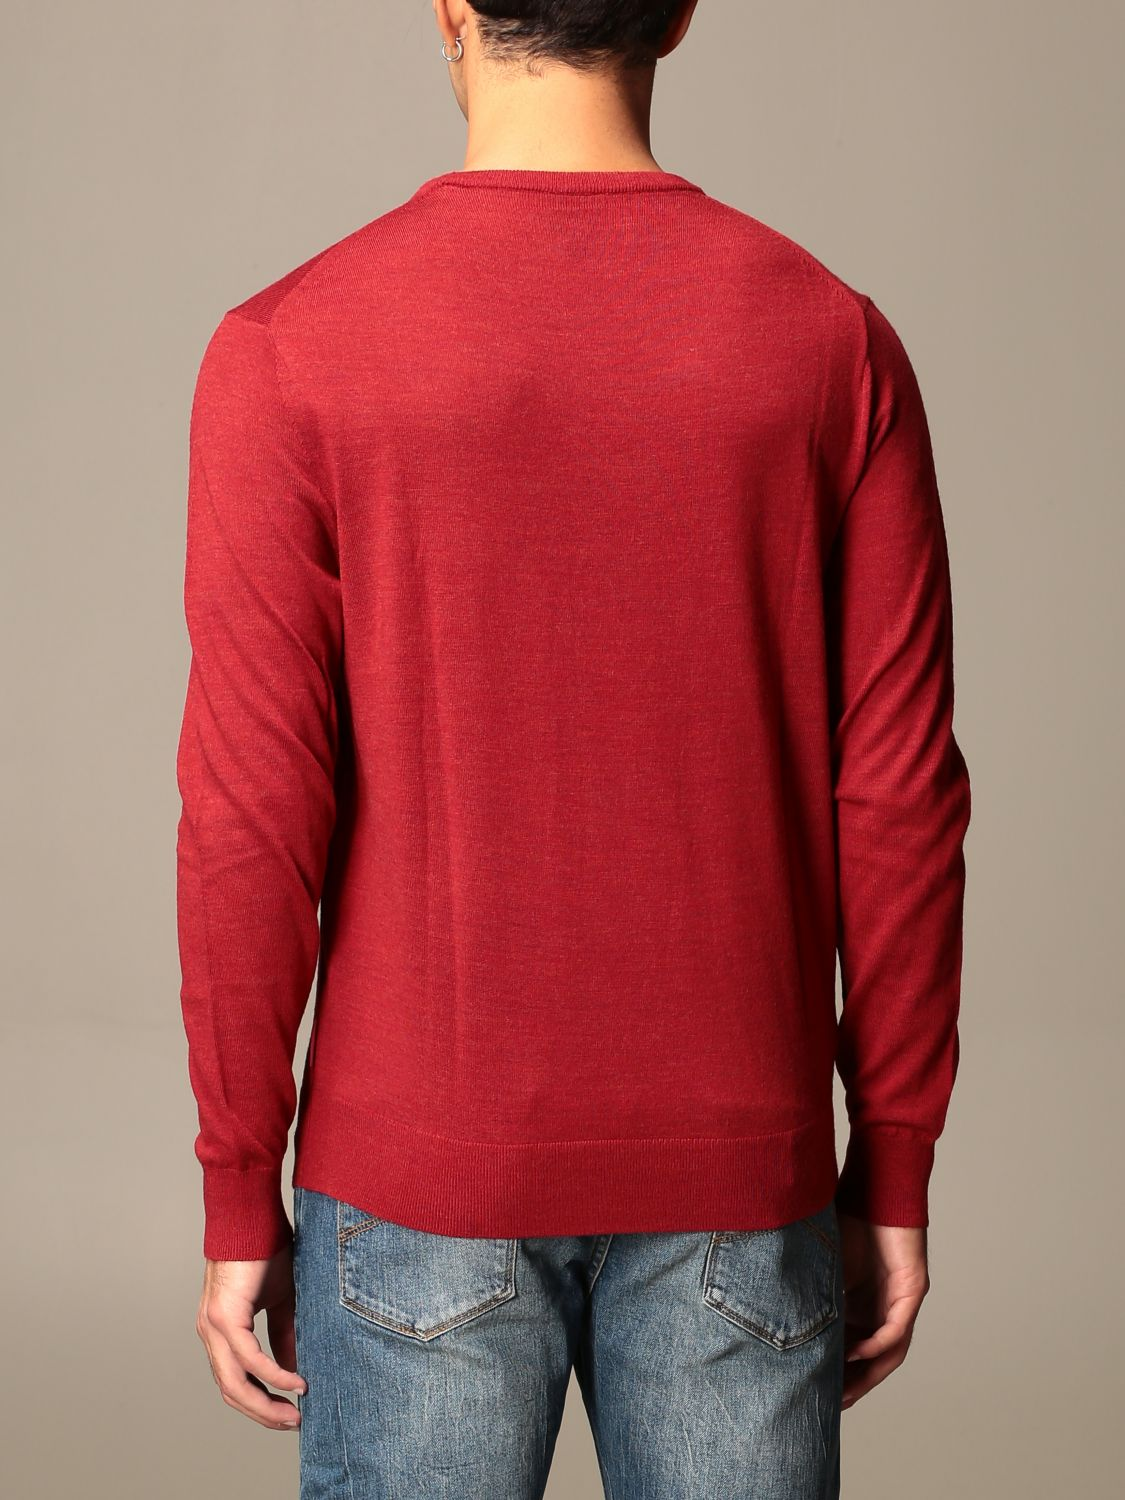 Jumper Armani Exchange: Jumper men Armani Exchange red 2